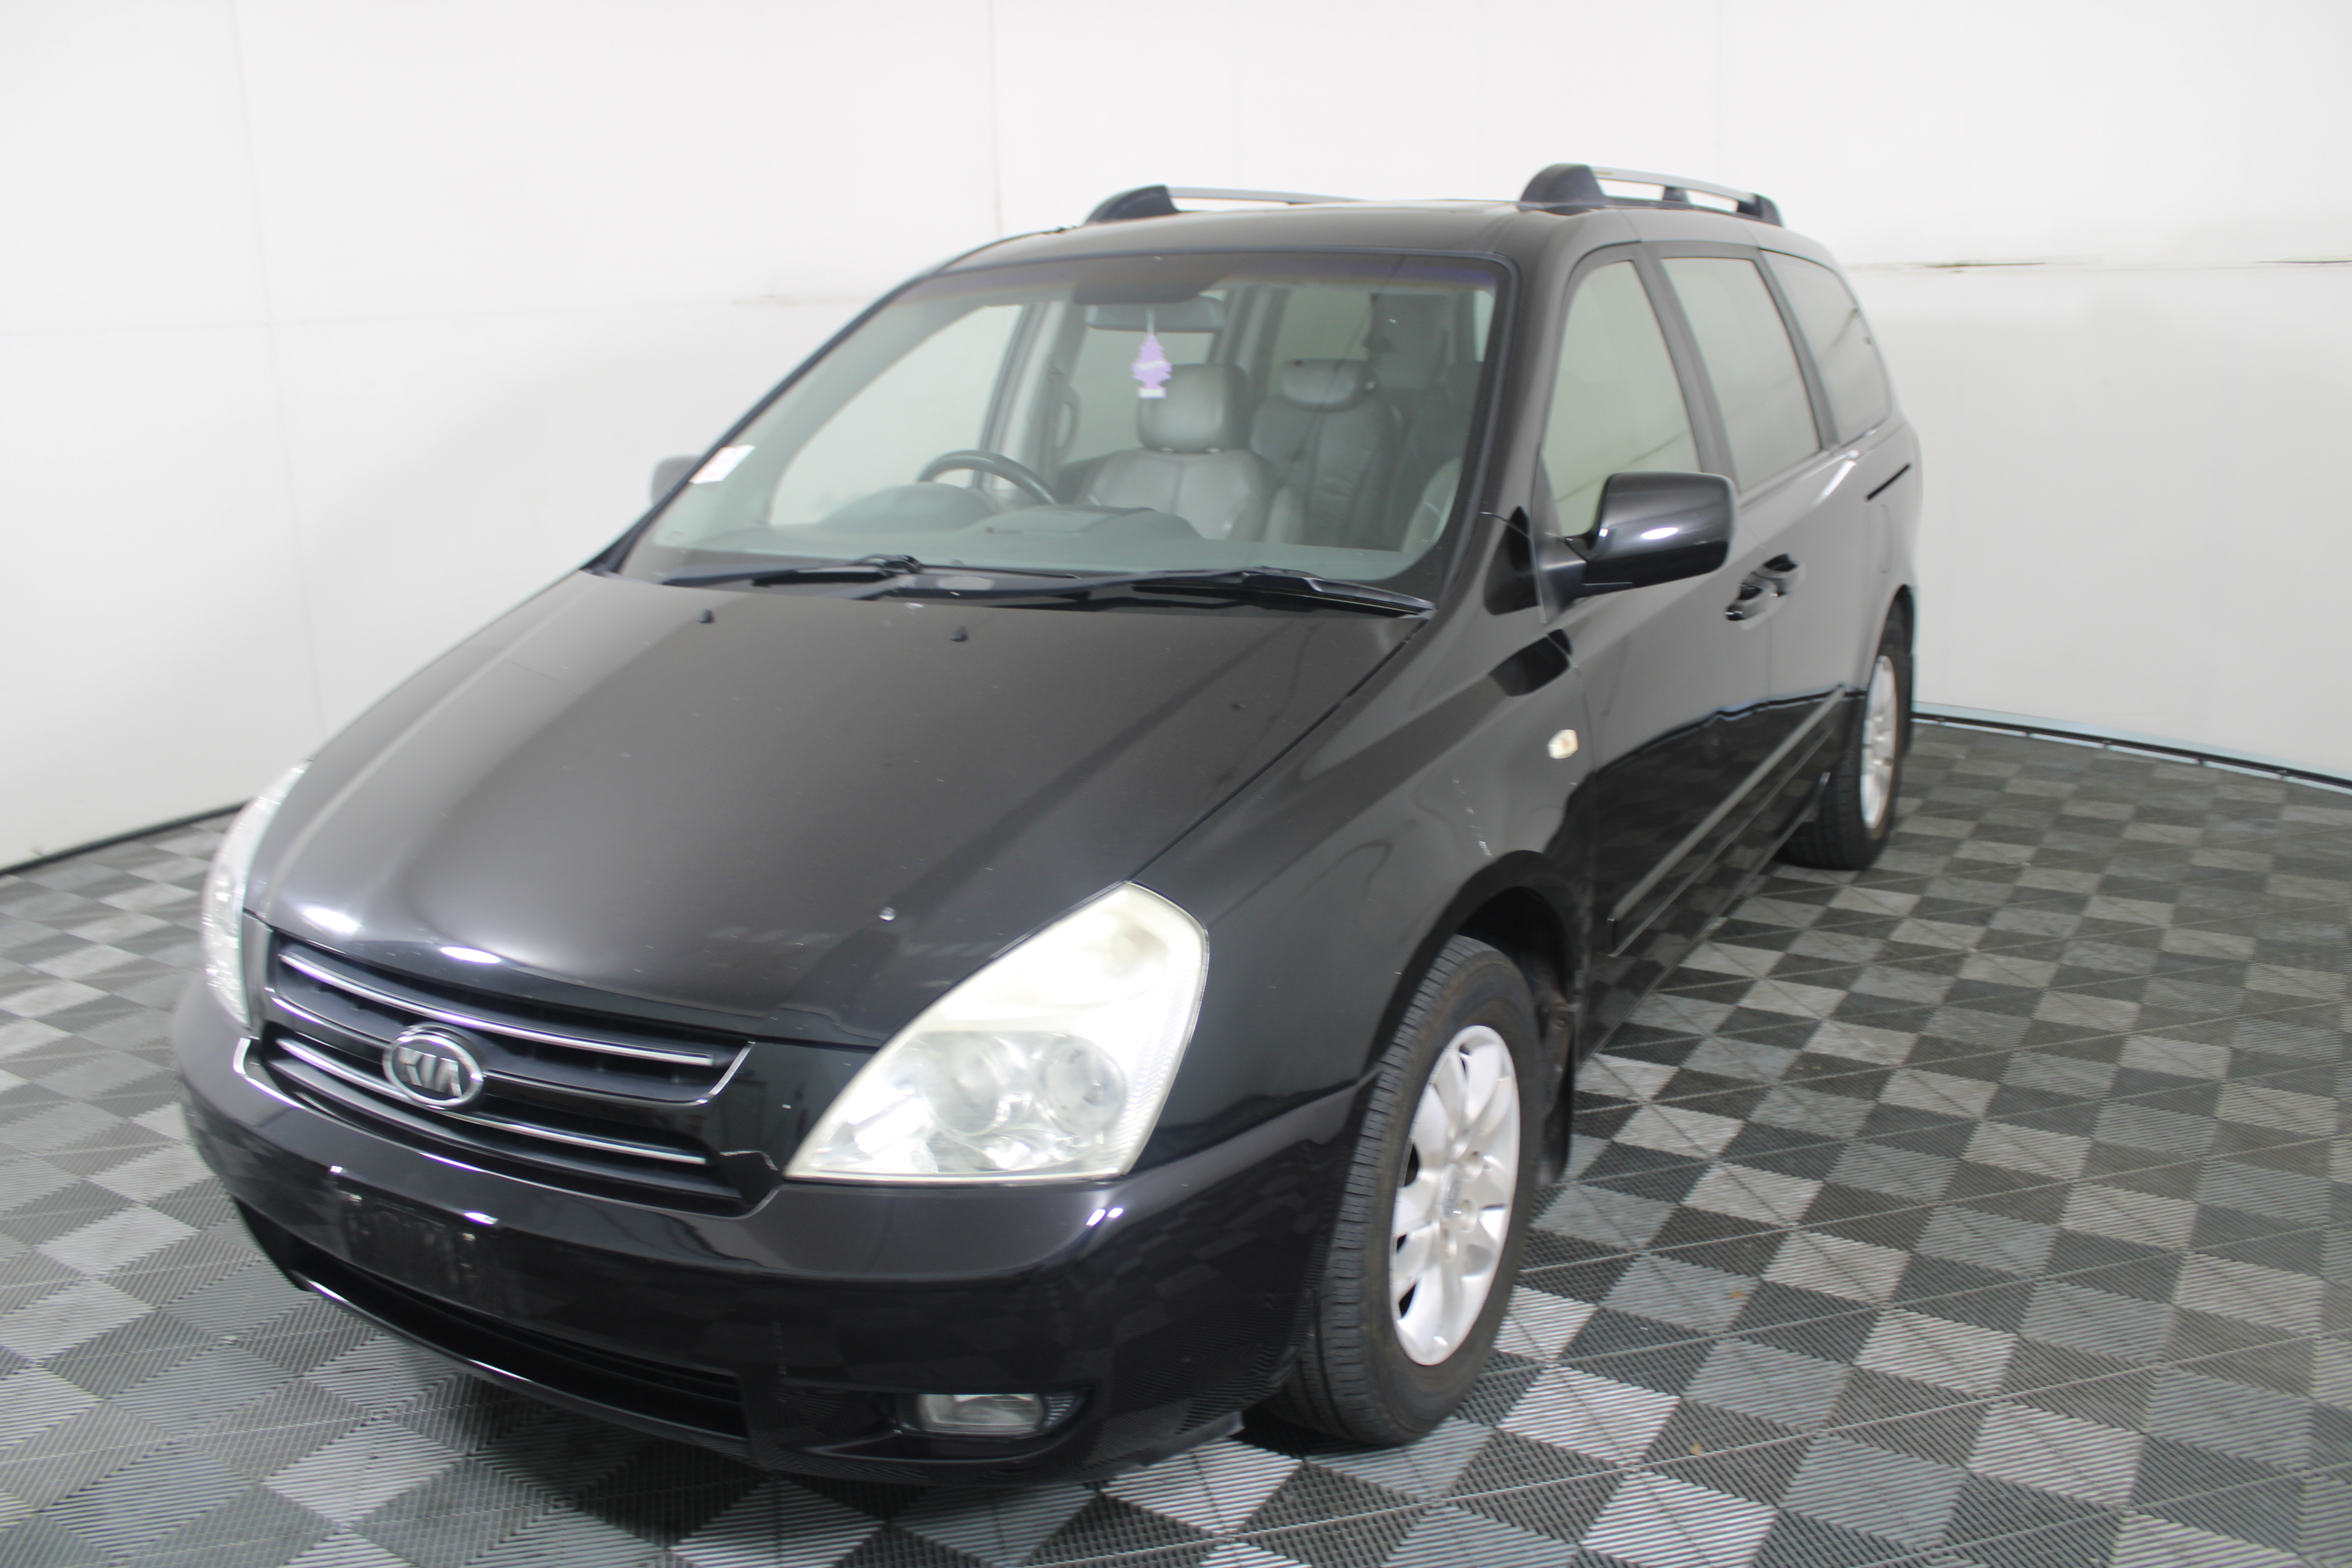 2006 Kia Grand Carnival Platinum VQ Automatic 8 Seats People Mover